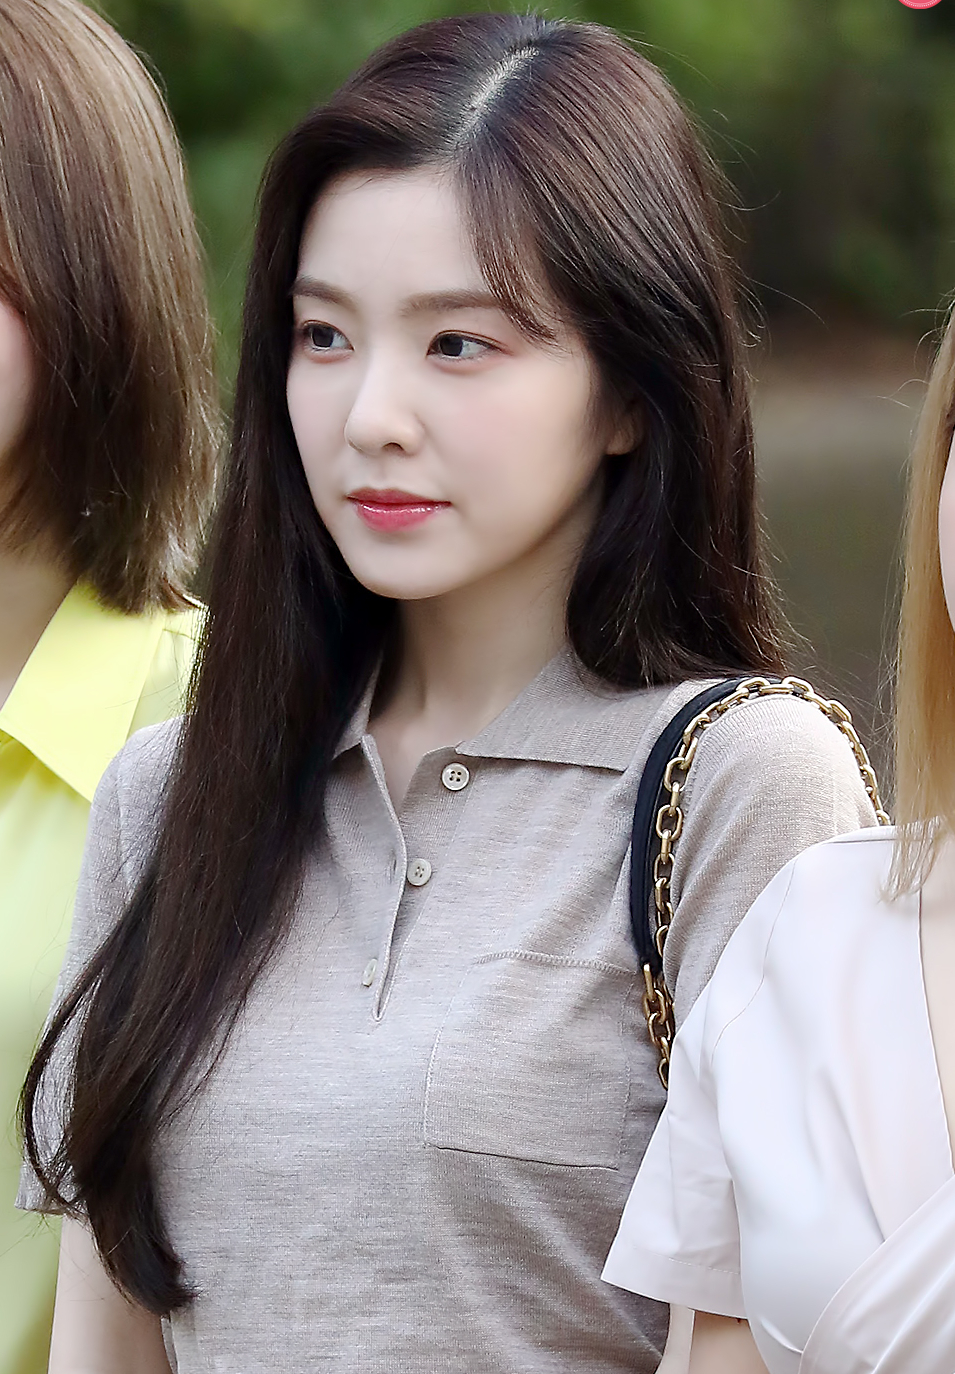 https://upload.wikimedia.org/wikipedia/commons/2/23/Bae_Irene_going_to_a_Music_Bank_recording_on_August_30%2C_2019_%282%29.jpg